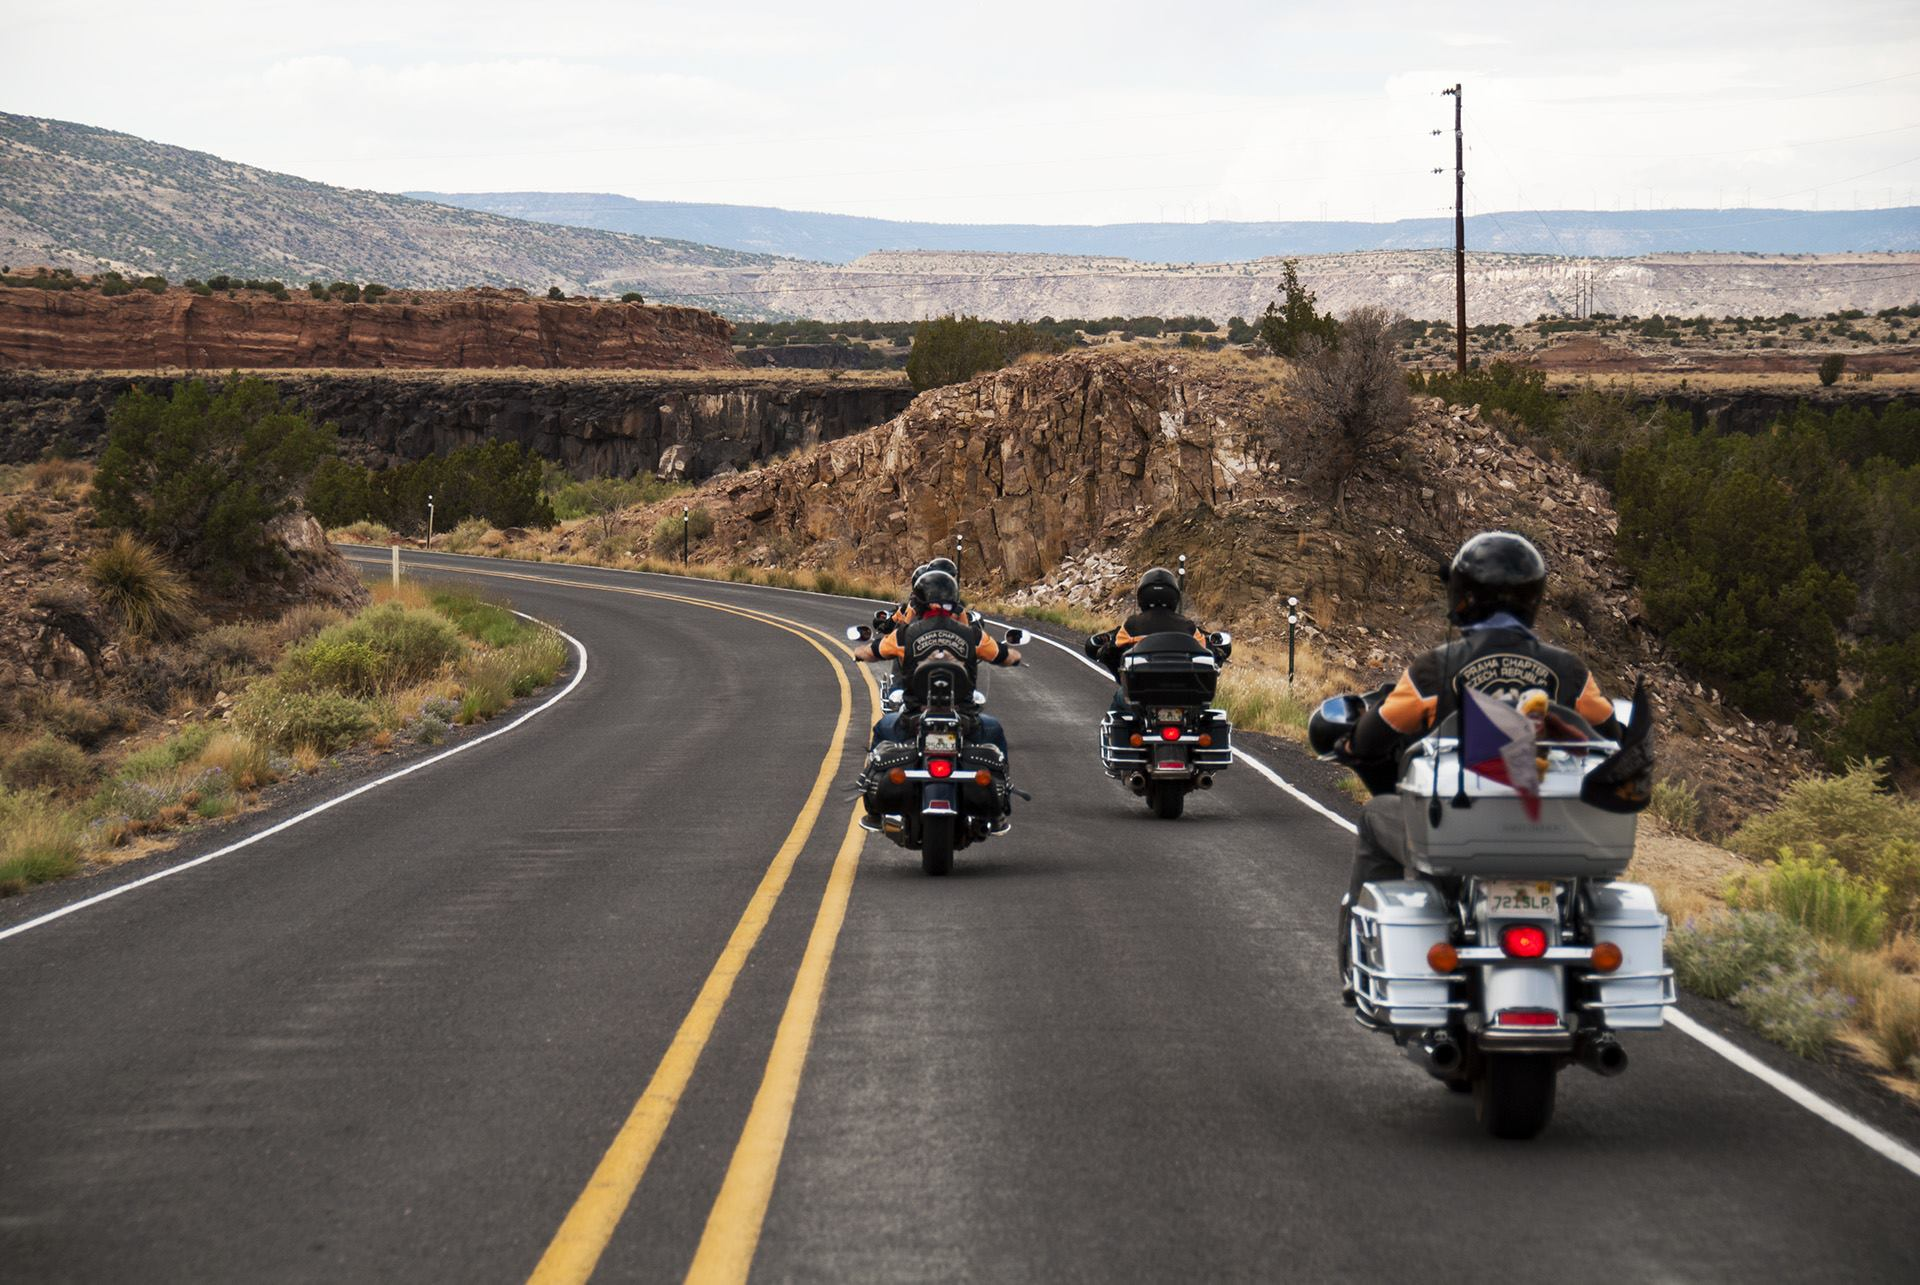 Expedition Route 66 2013